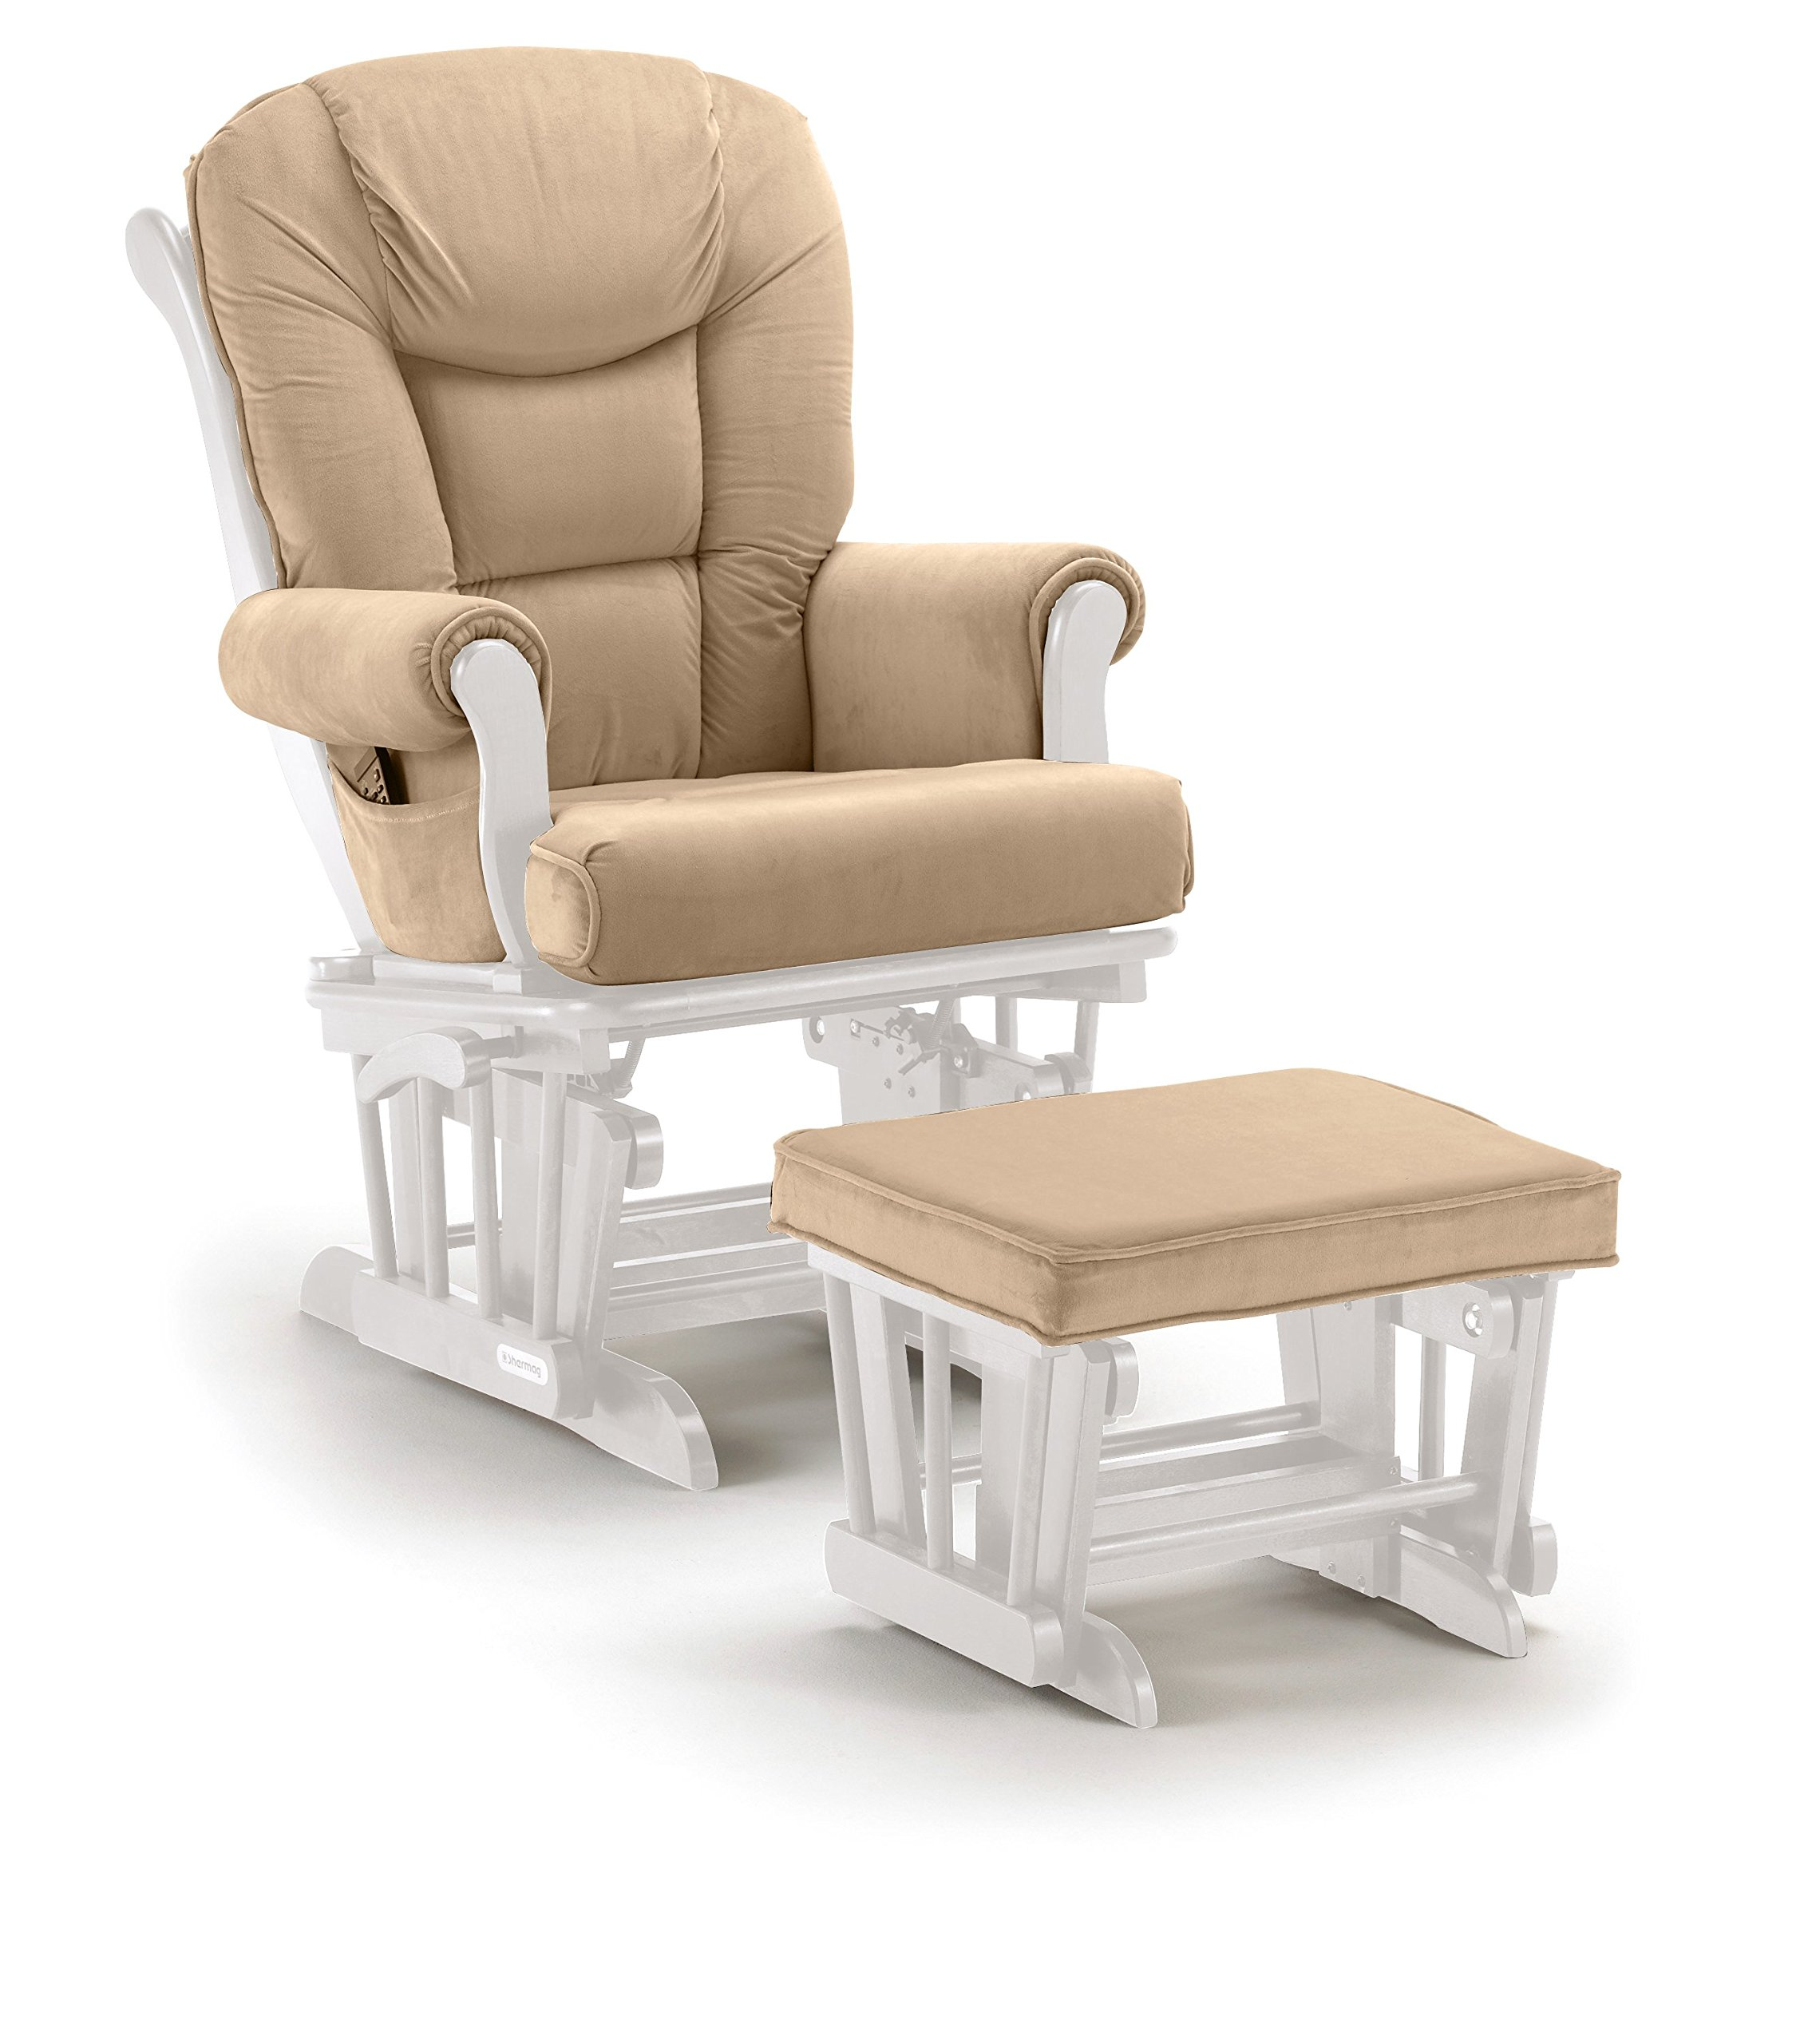 Lennox Multiposition-Lock Glider Chair and Ottoman Combo, White with Pearl Beige by Lennox Furniture